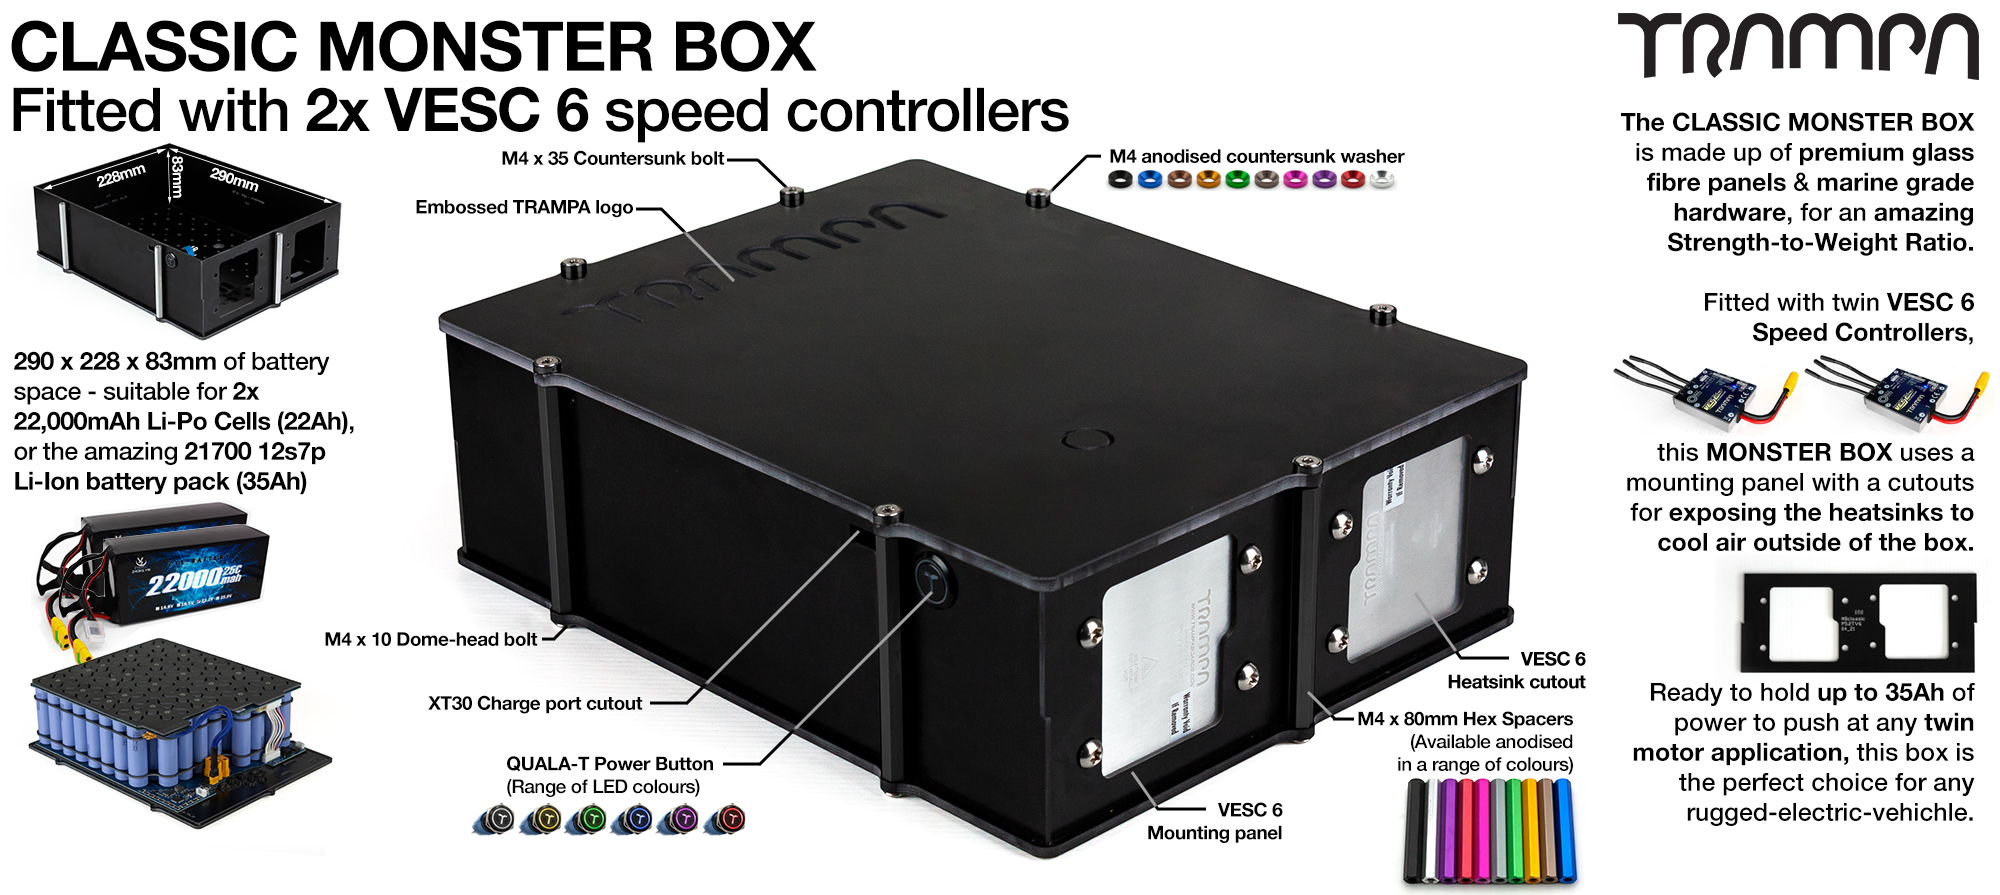 MASSIVE MONSTER Box fitted with 2x VESC 6 & NRF - fits 84 21700 cells is Made specifically to work in conjunction with TRAMPA's Electric Decks but can be modified to power many things!